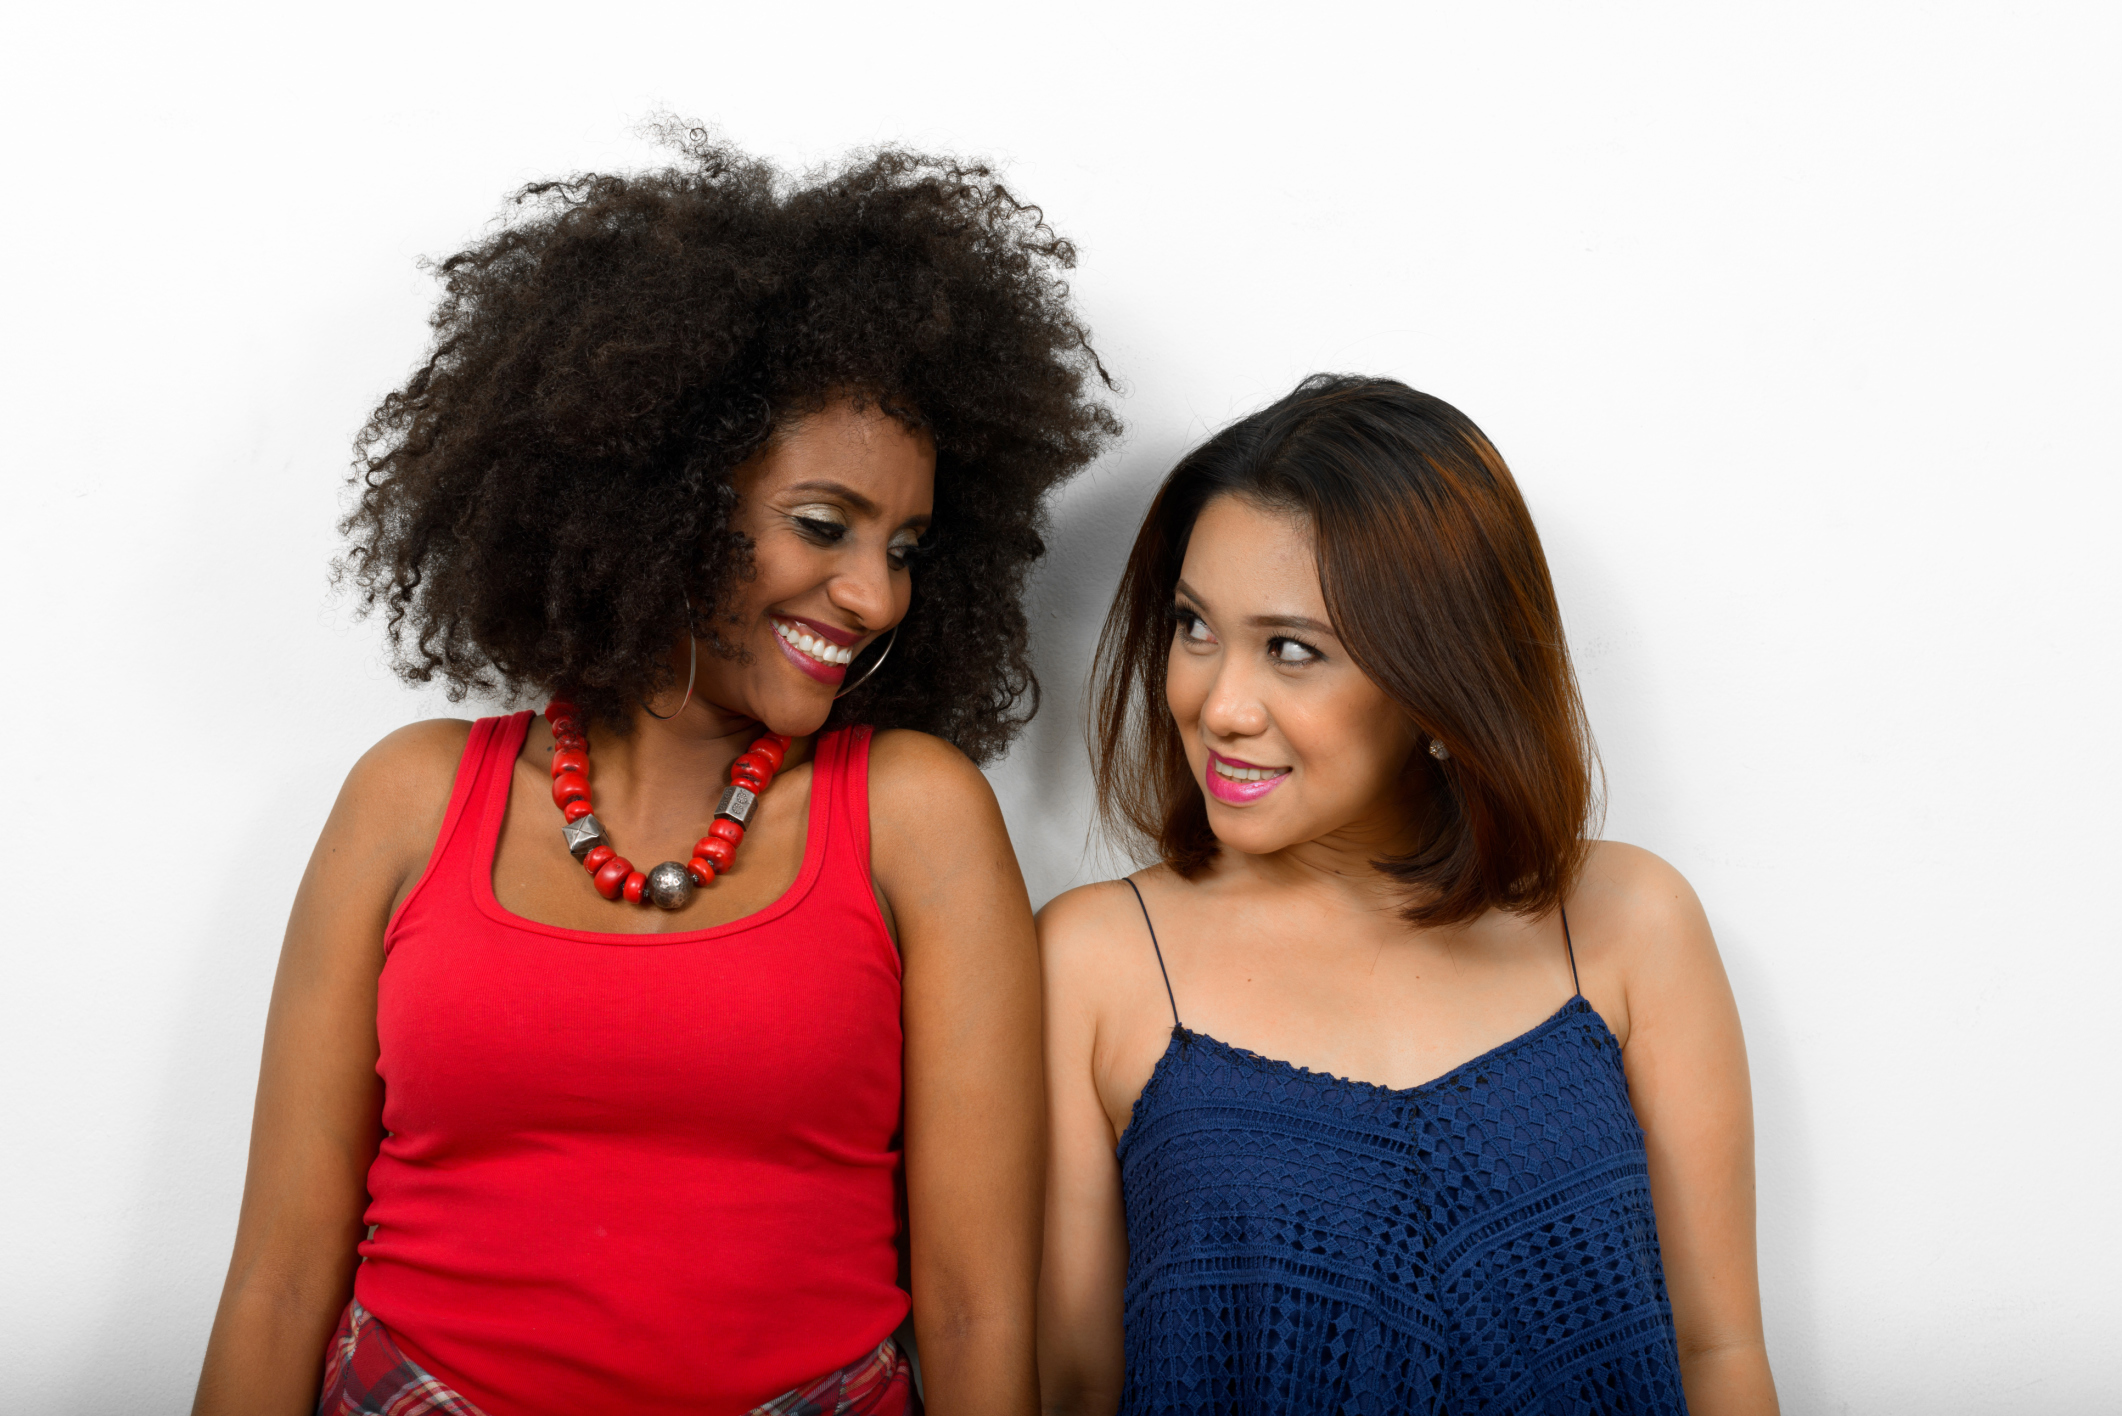 ganges lesbian singles Shemeetsher meeting black lesbian women just got easier shemeetshercom is a lesbian dating website for black gay singles created with the intent of offering a platform to foster healthy and sustaining relationships to those in the black lesbian.